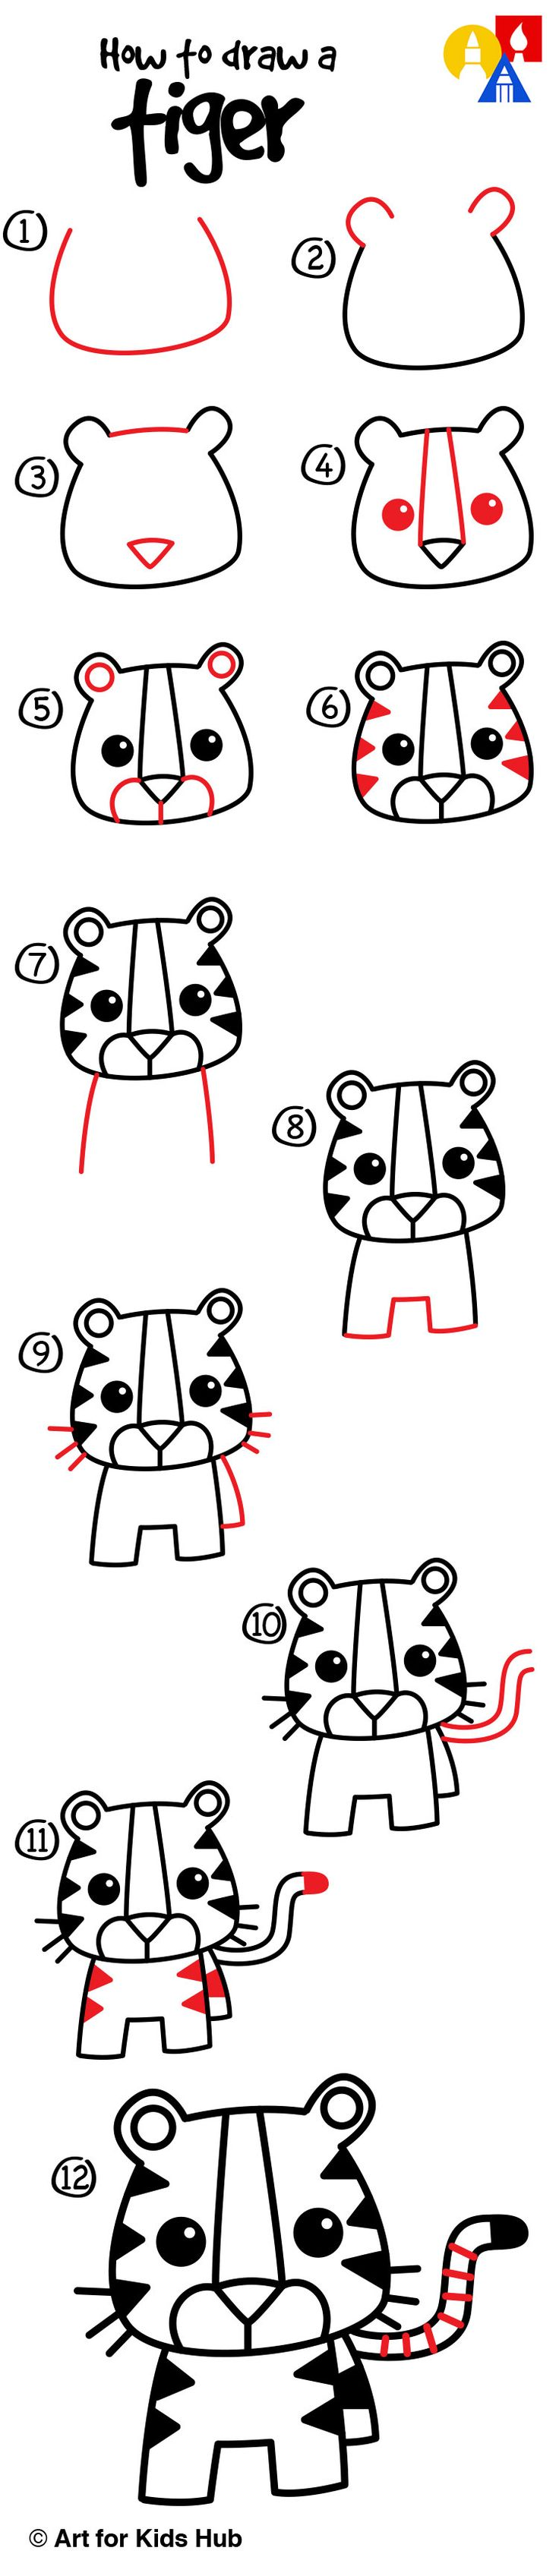 how to draw a cartoon tiger art for kids hub - Simple Drawing For Children